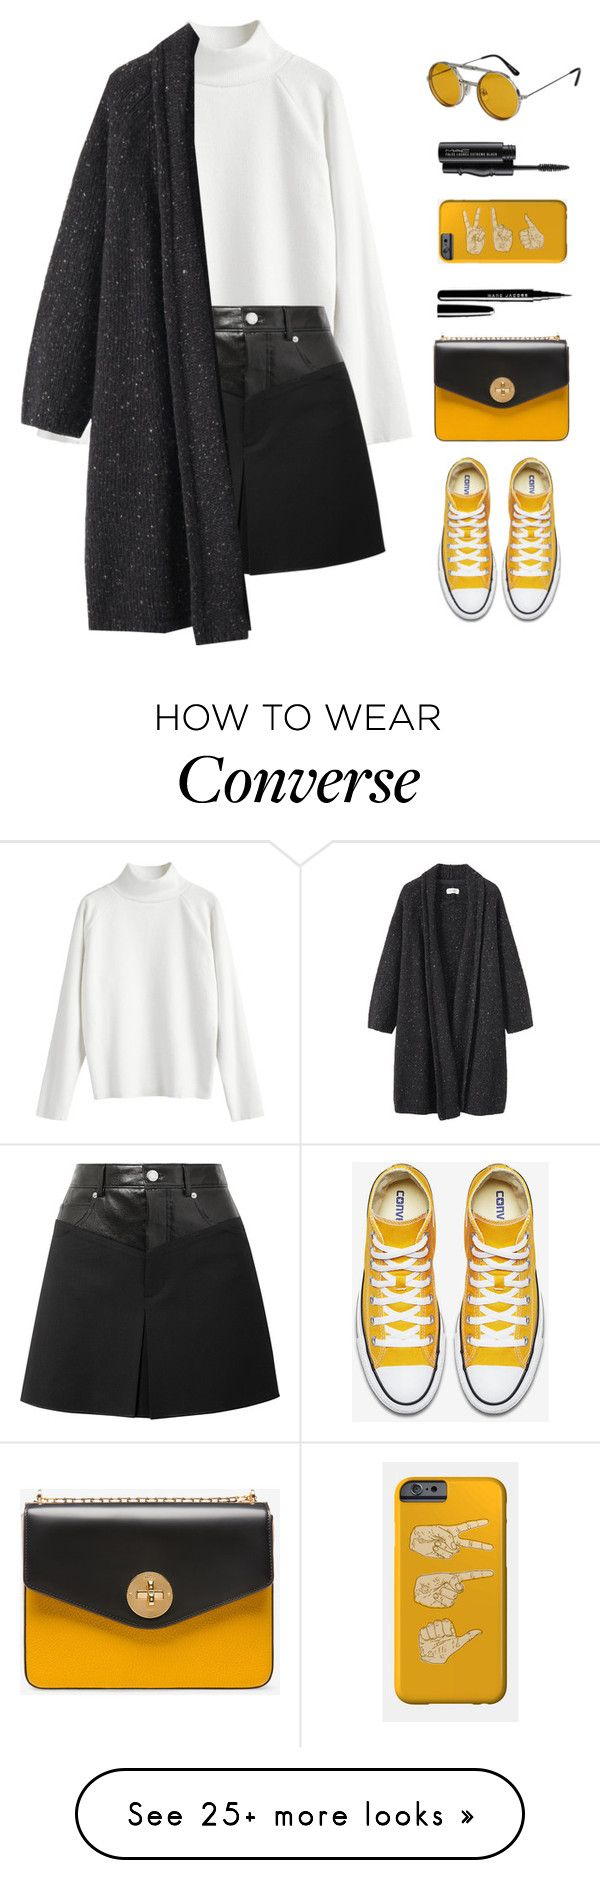 """""""Signals"""" by mariposa-fashion-21 on Polyvore featuring Helmut Lang, Toast, MAC Cosmetics, Bally and Spitfire"""